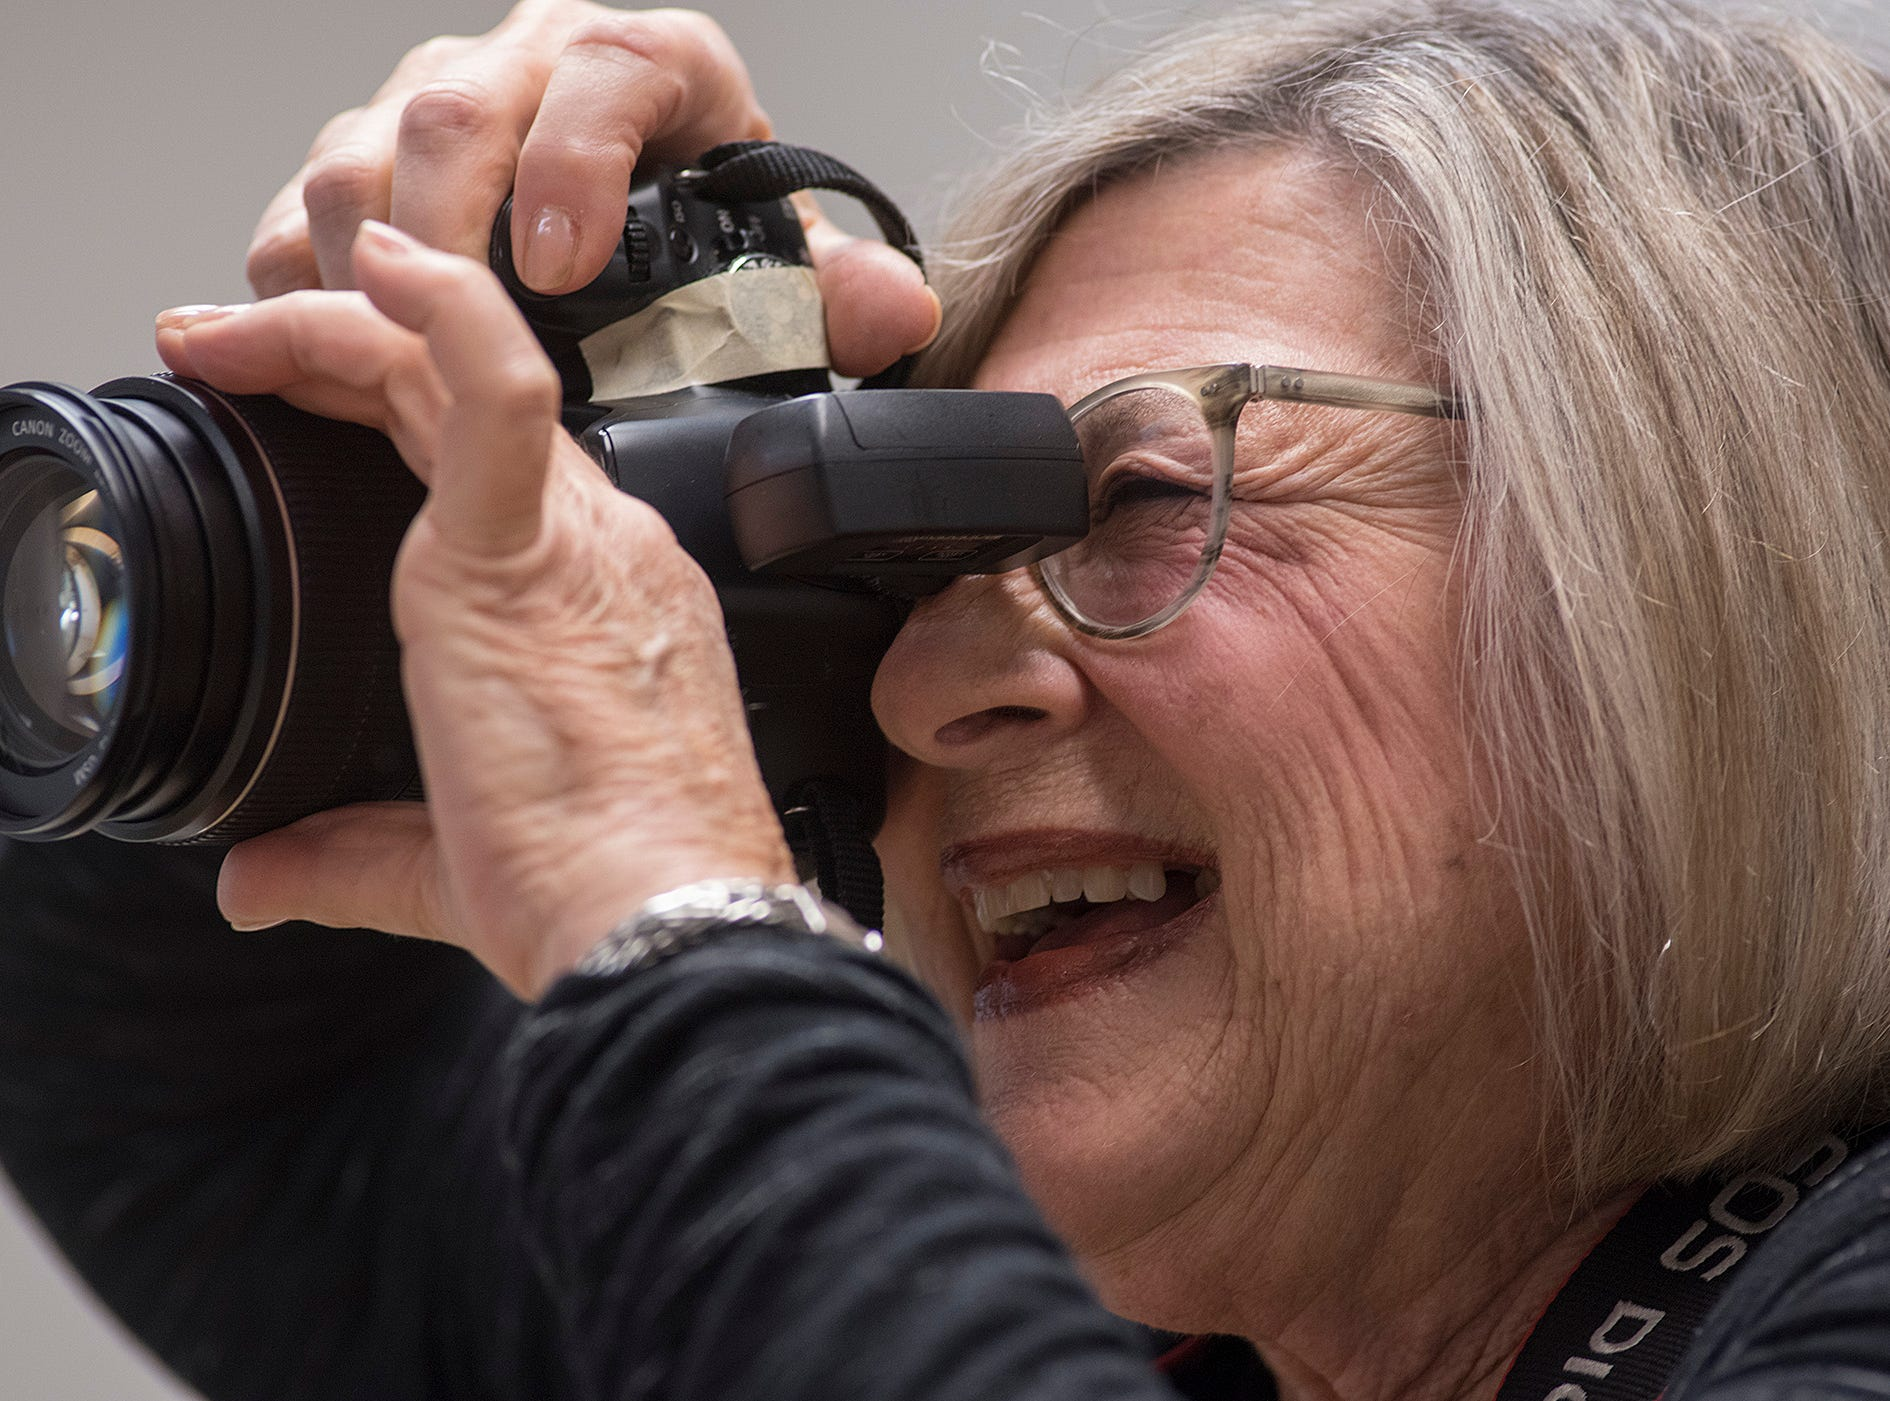 Elaine Yaker has photographed young clients at her studio, Pierce Street Portraits, for nearly thirty years.